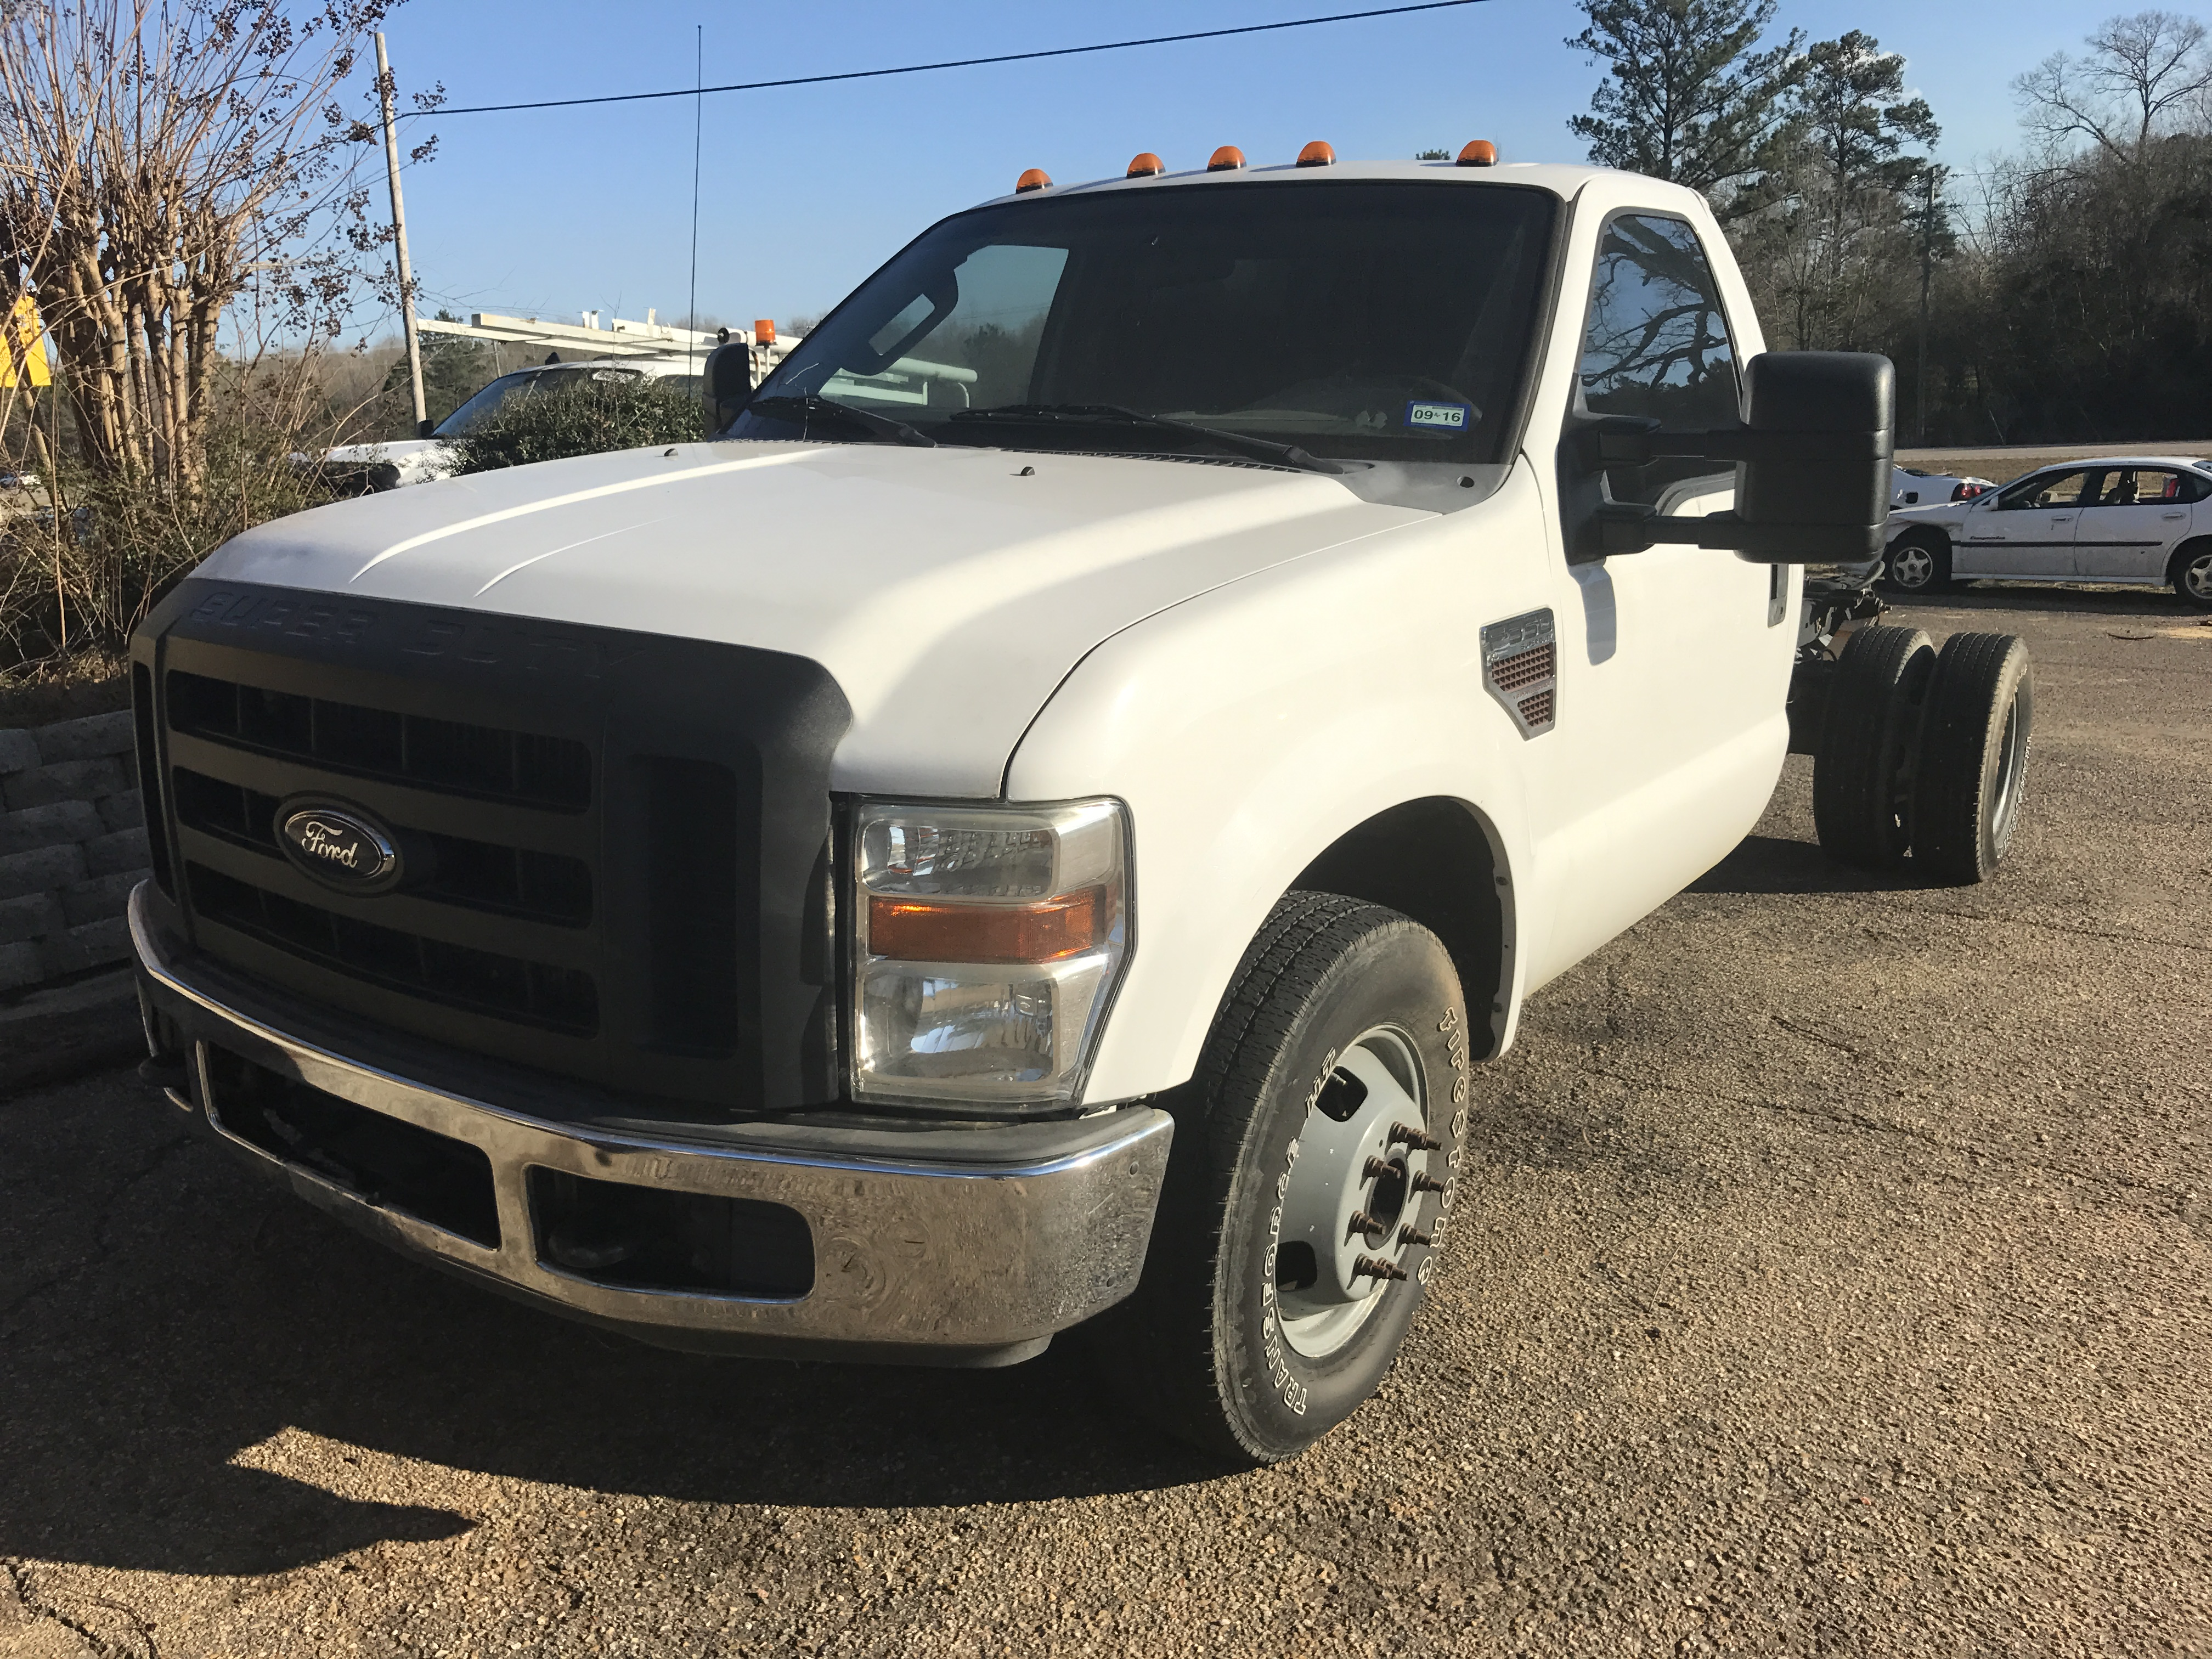 2009 FORD F350 SUPER DUTY DRW C/C | Lamar Auto Salvage Inc.